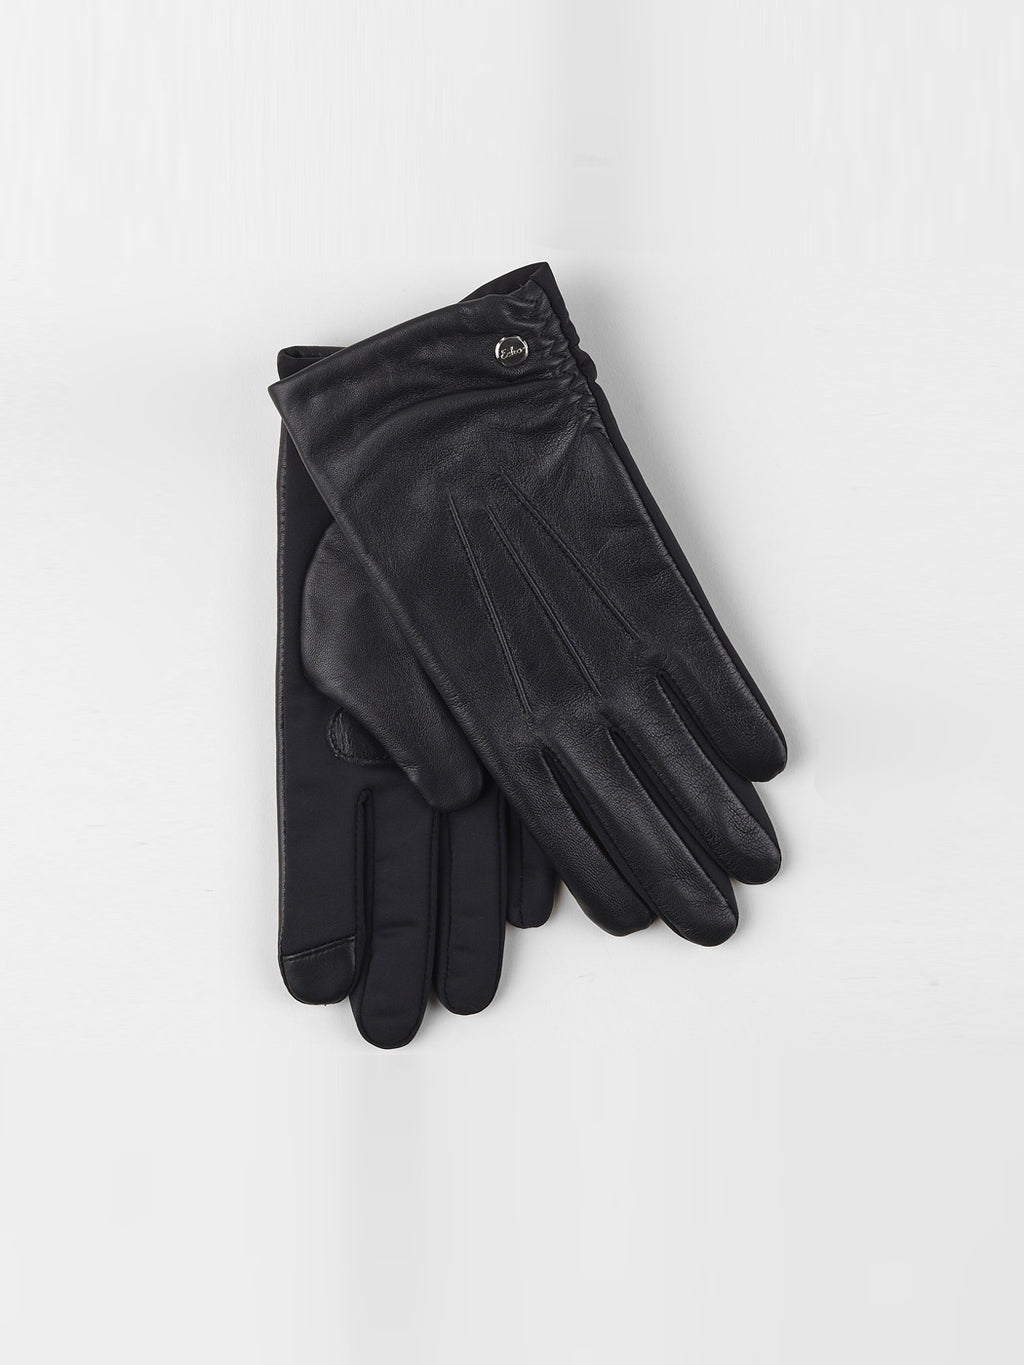 Echo - Classic Leather Superfit Glove / Black